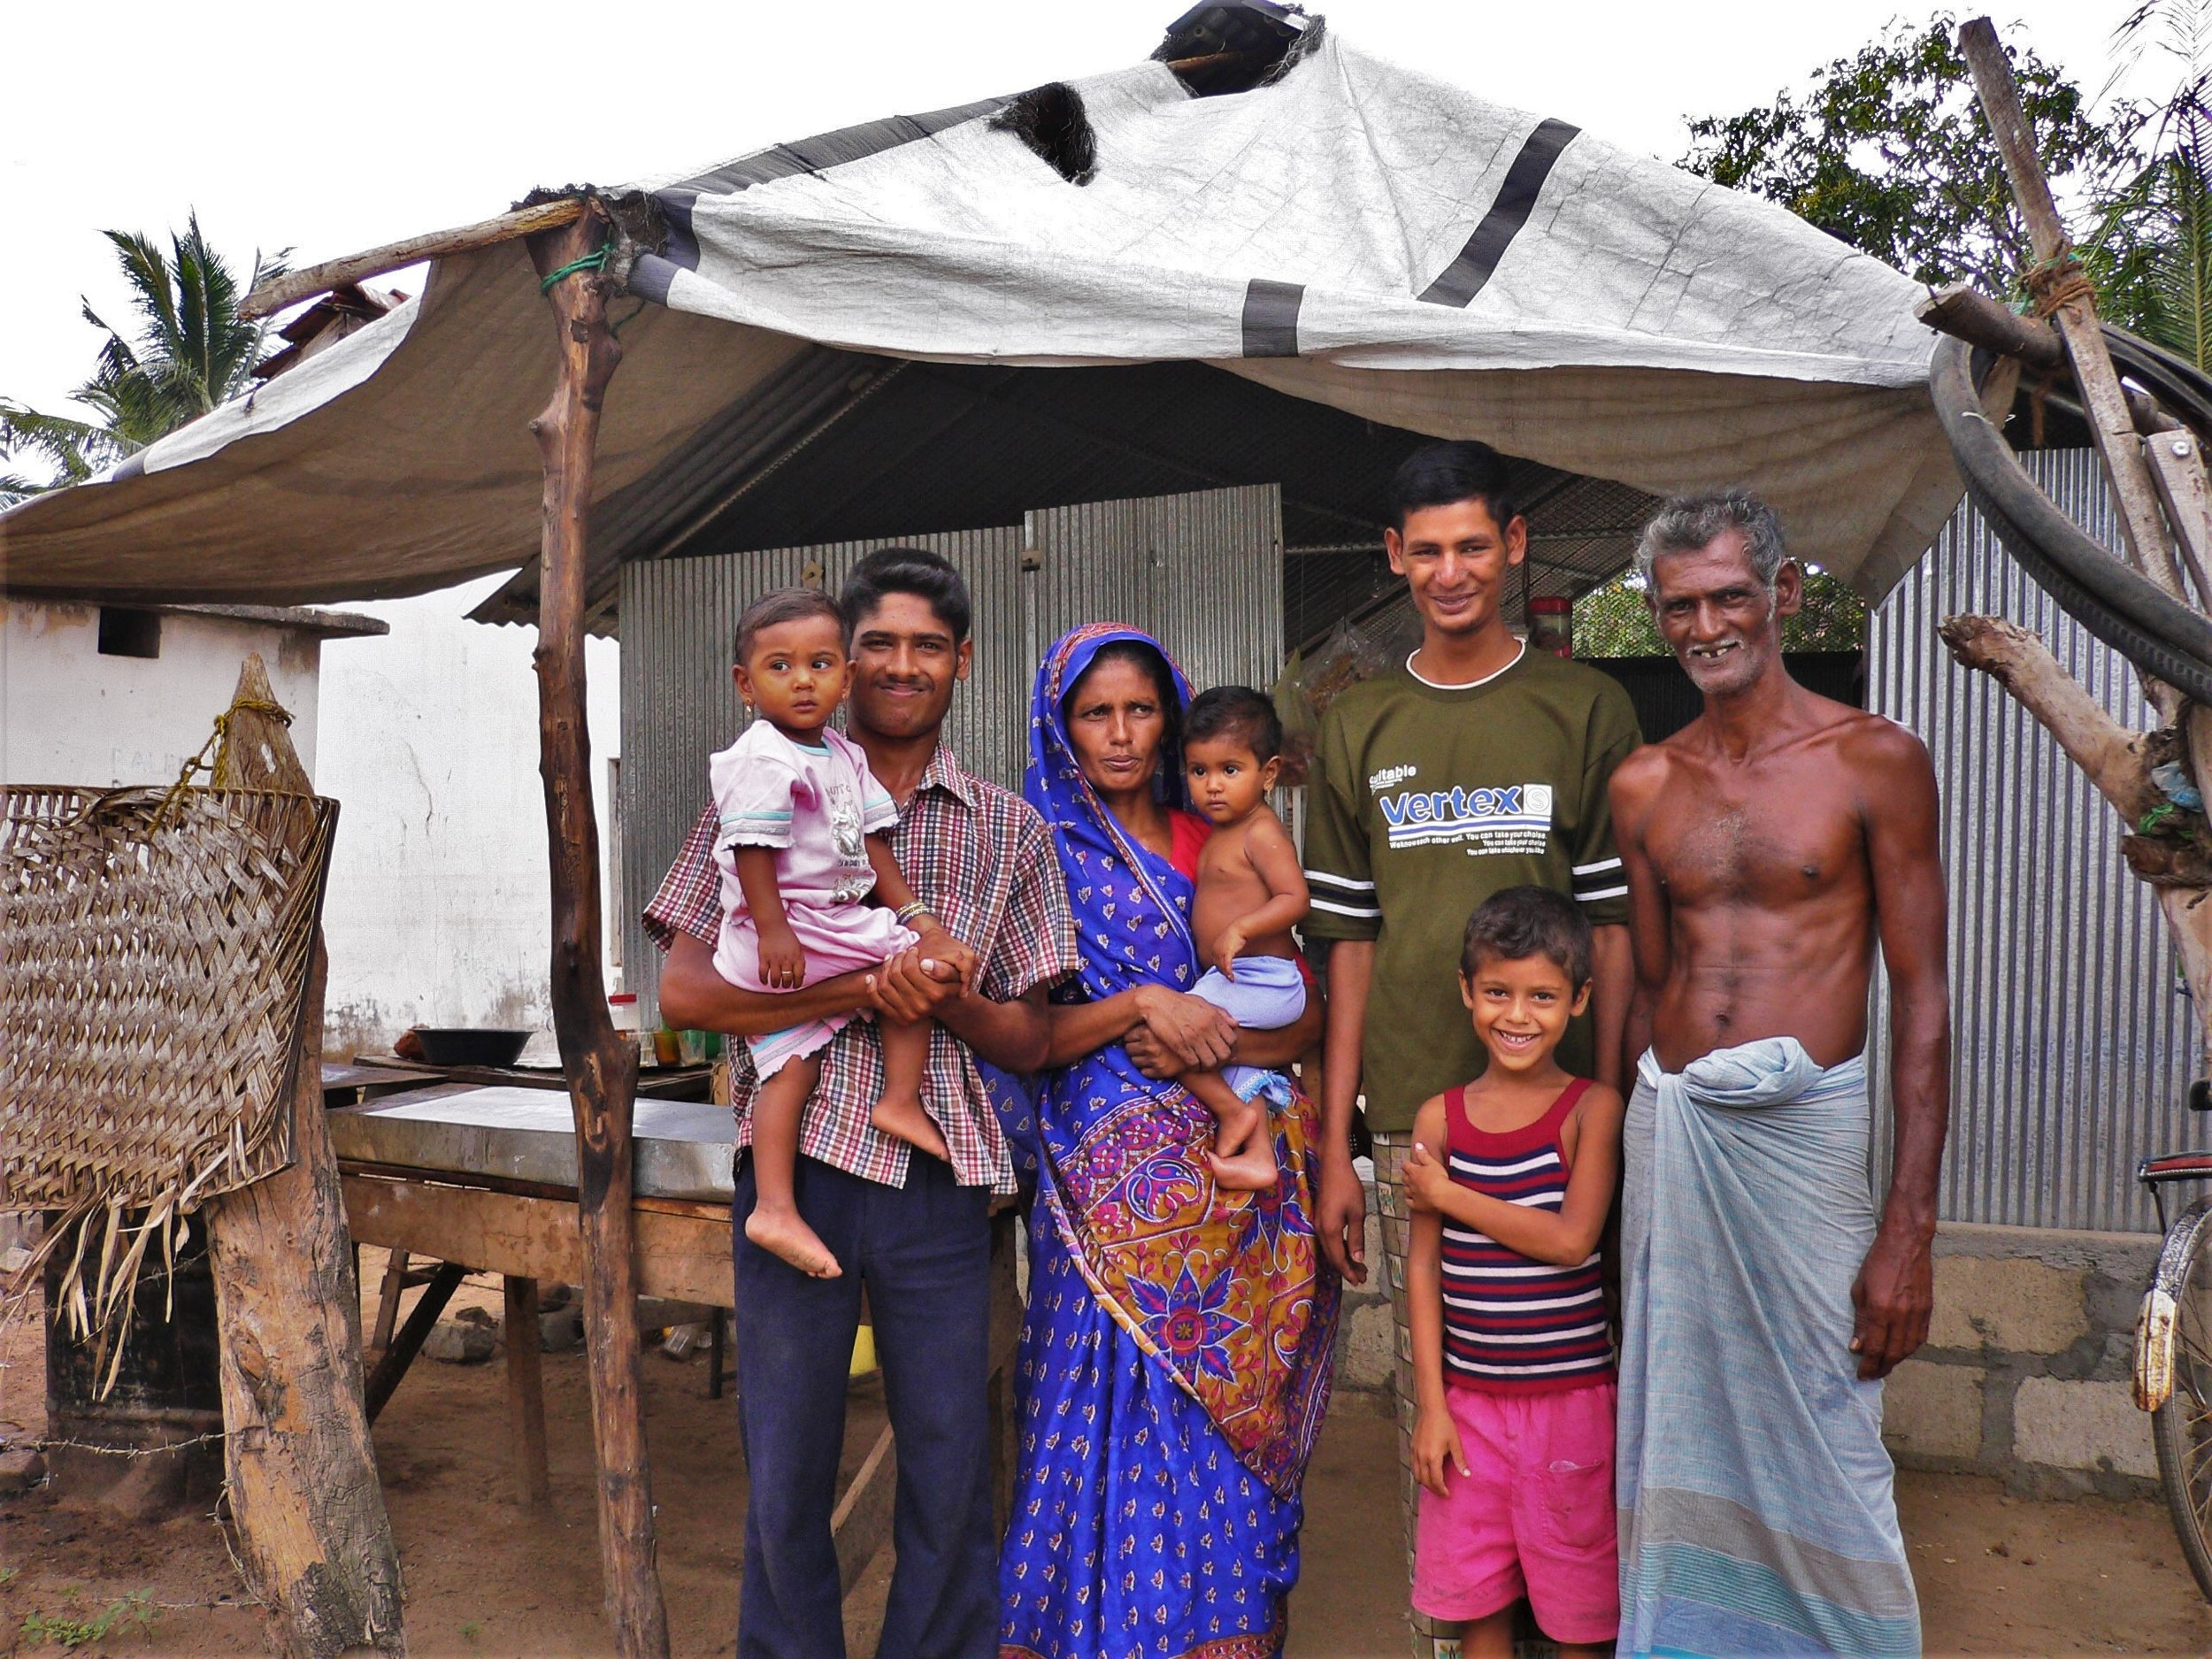 Samad and his family